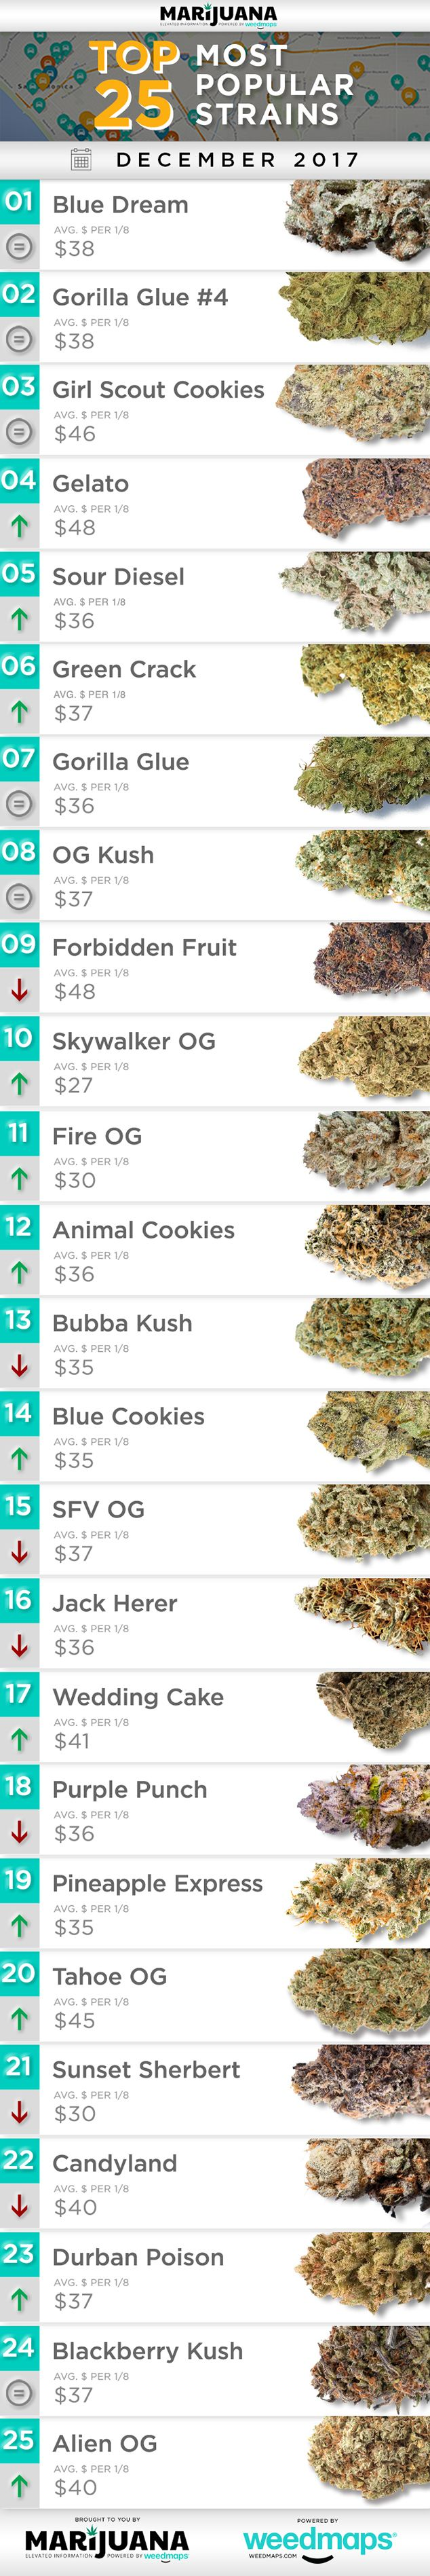 25 Most Popular Cannabis Strains Across North America in December